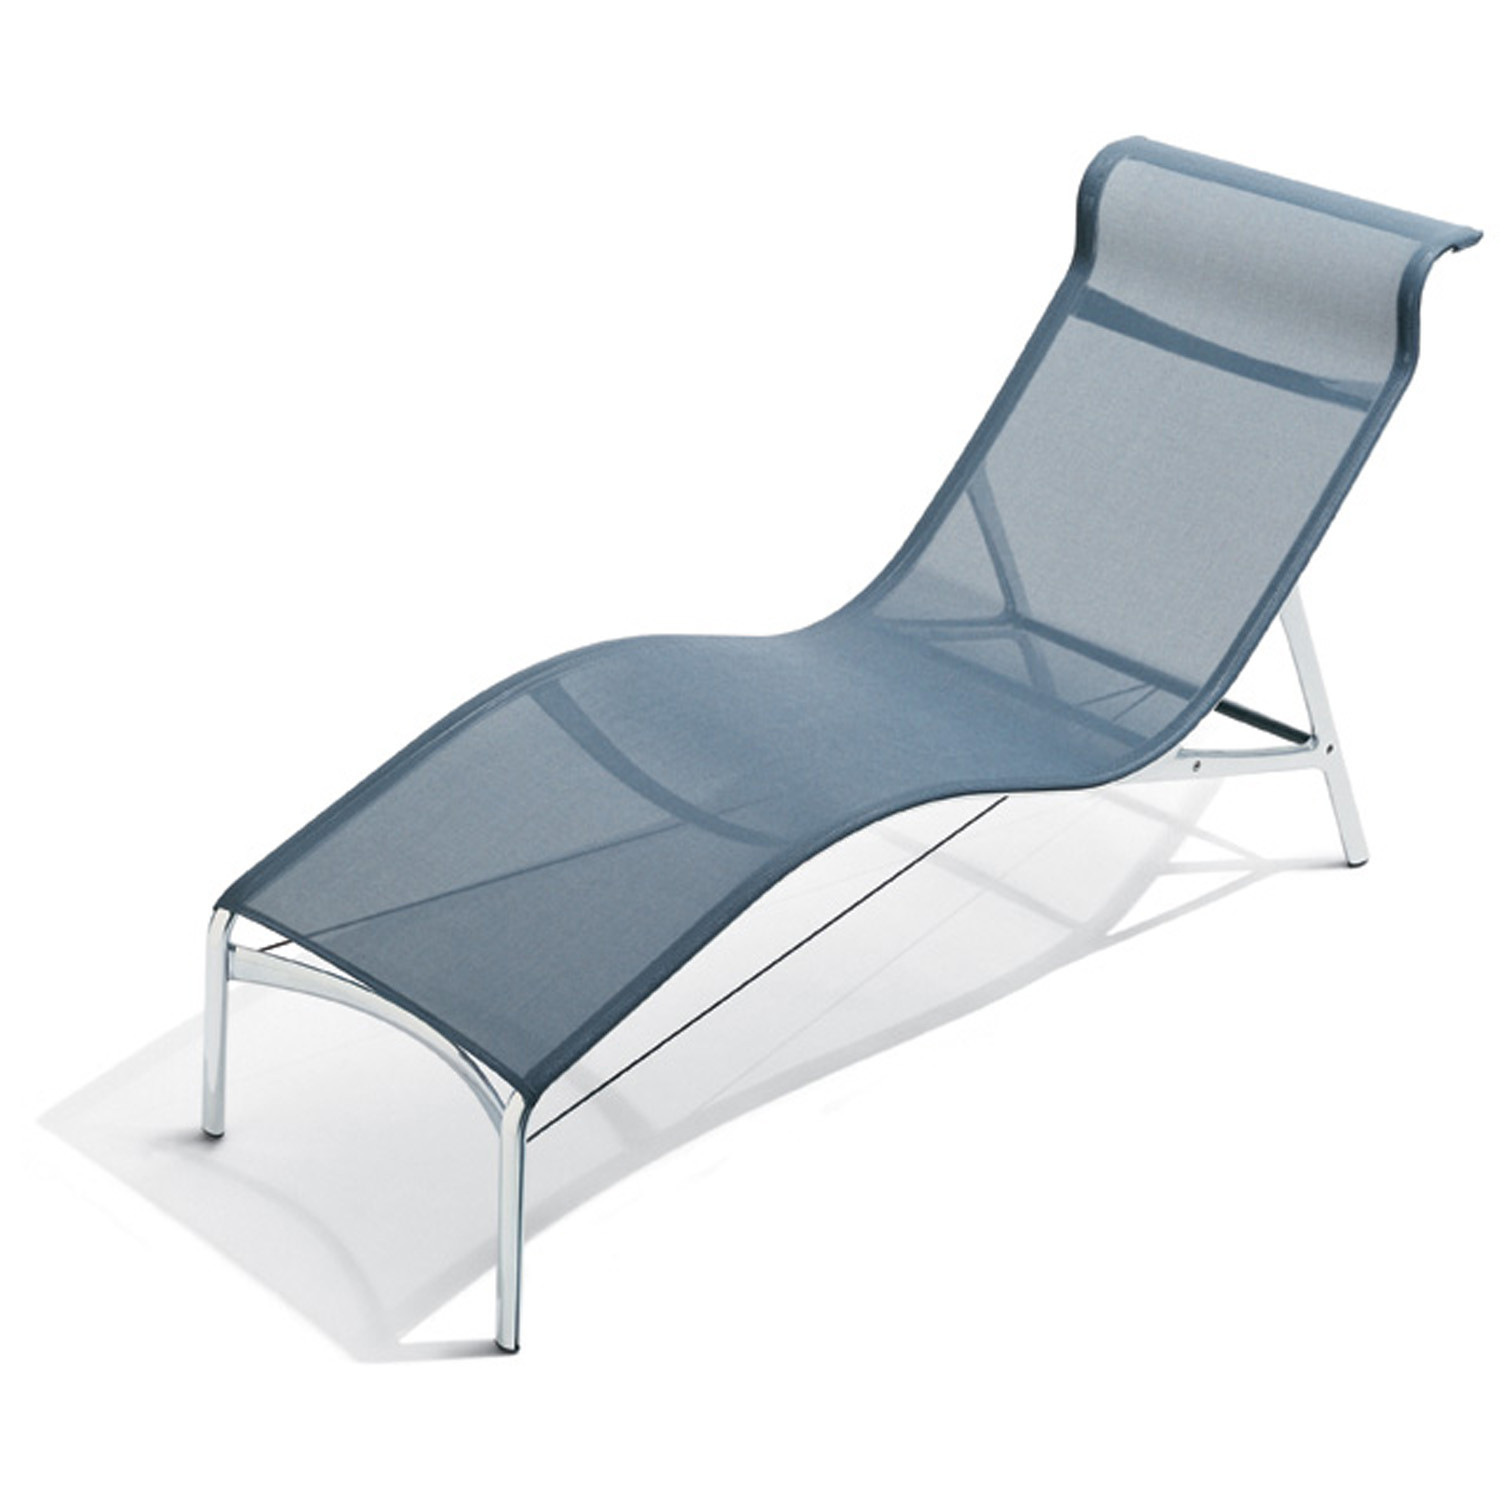 Green Outdoor Garden Relaxer Sun Lounger